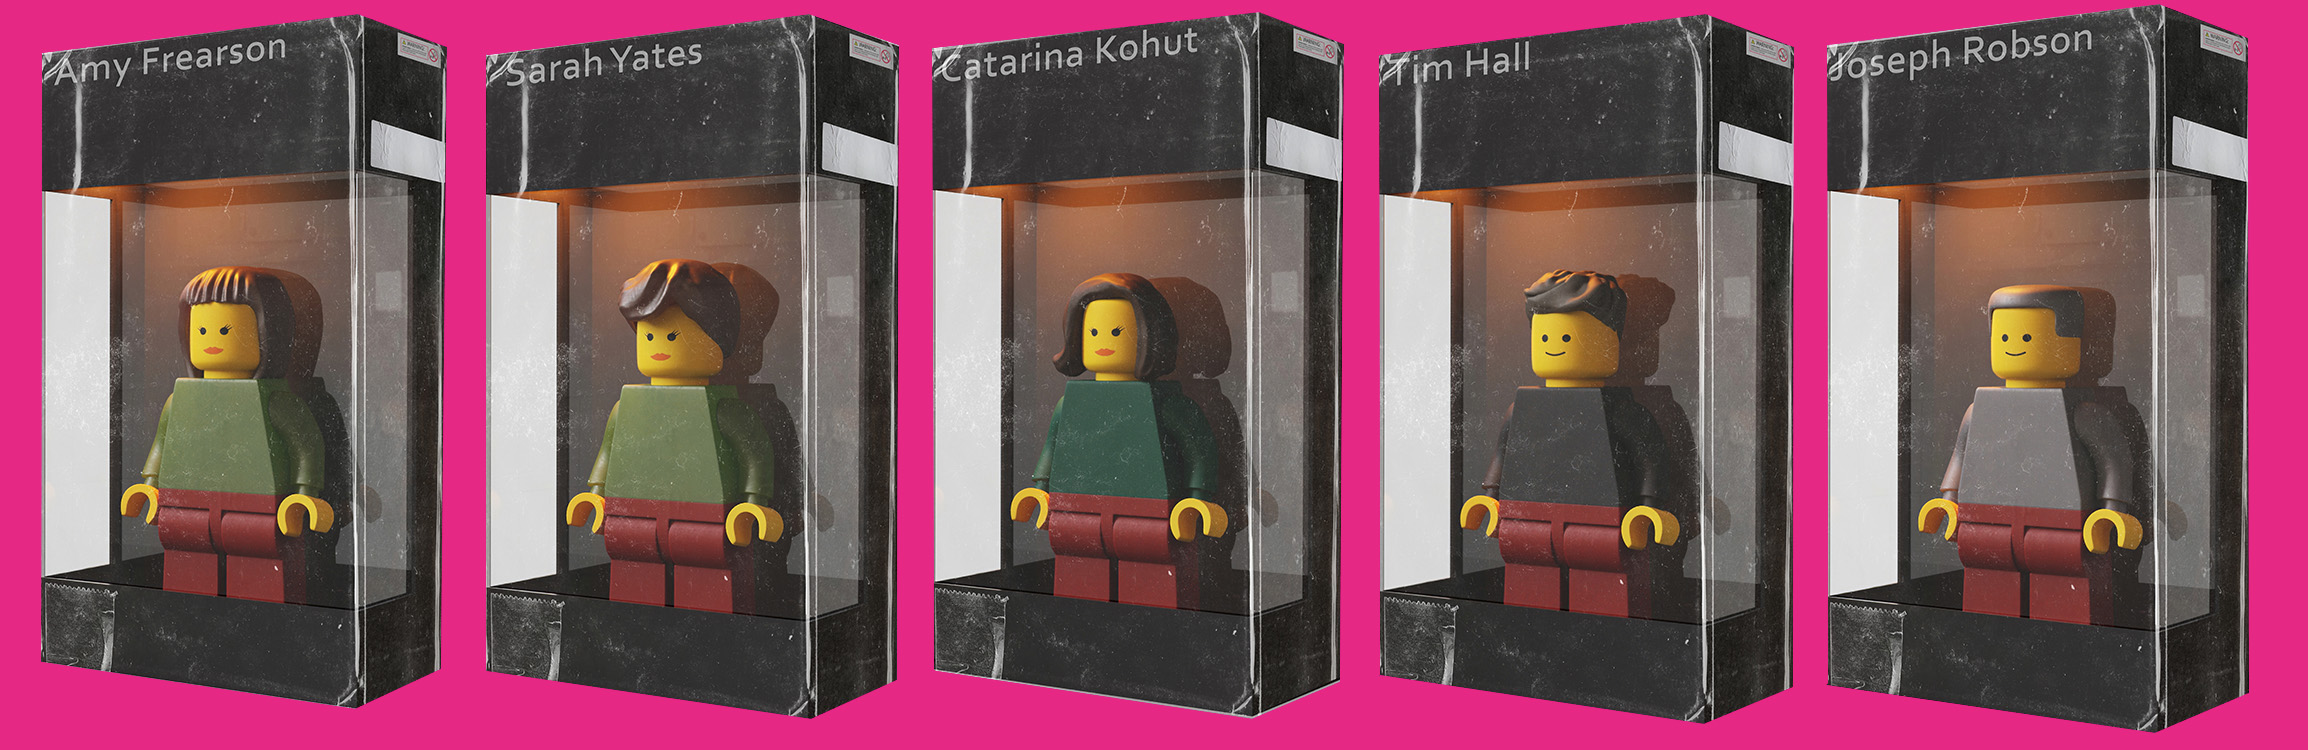 Lego People For Web